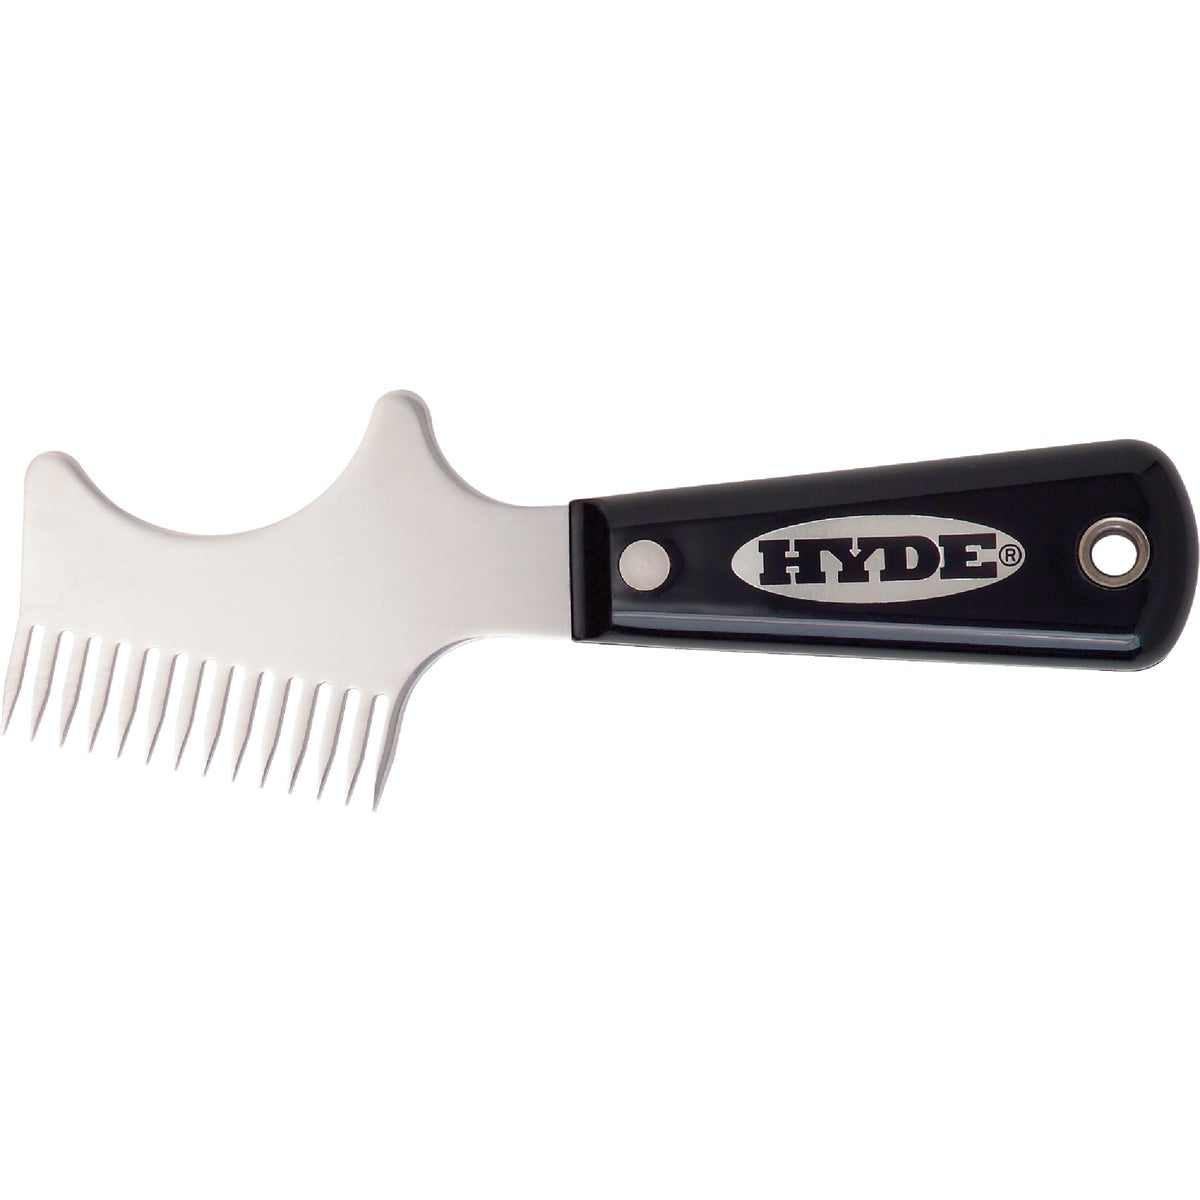 BRUSH & ROLLER CLEANER - 45960 by Hyde Mfg Co